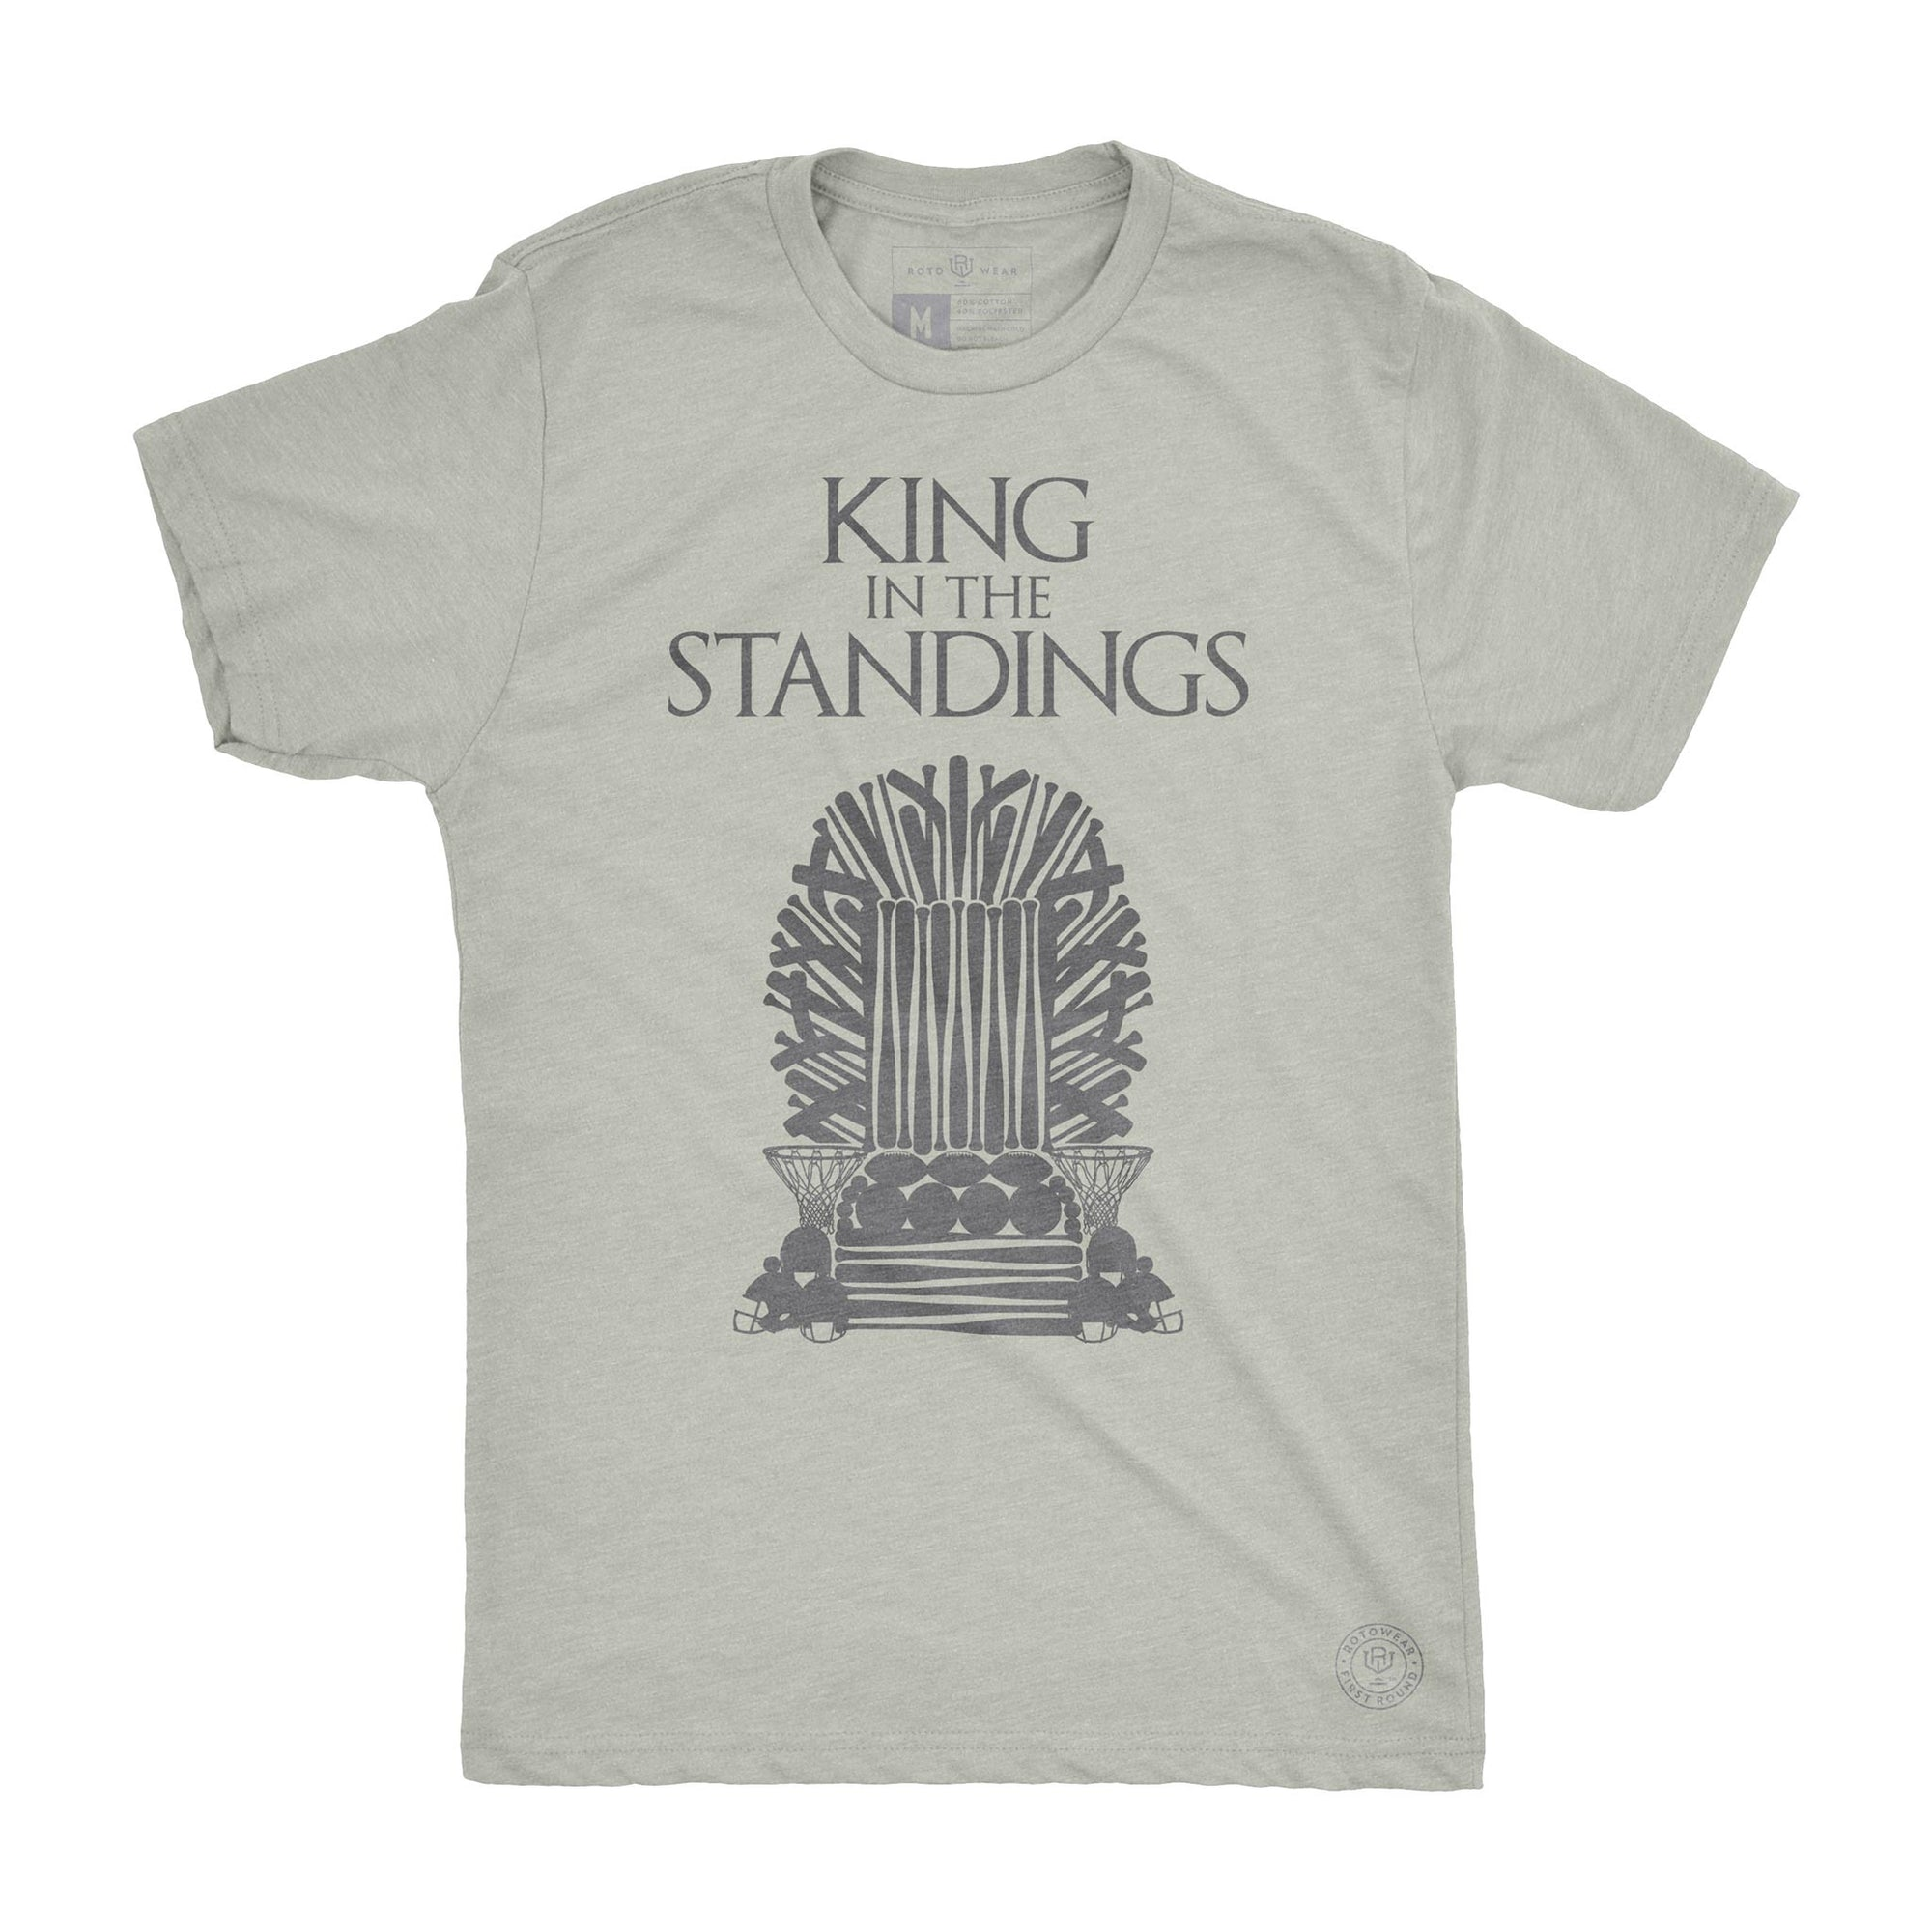 King In The Standings men's t-shirt by RotoWear for DFS players, fantasy football, fantasy baseball, fantasy hockey and fantasy basketball managers who are Game Of Thrones fans